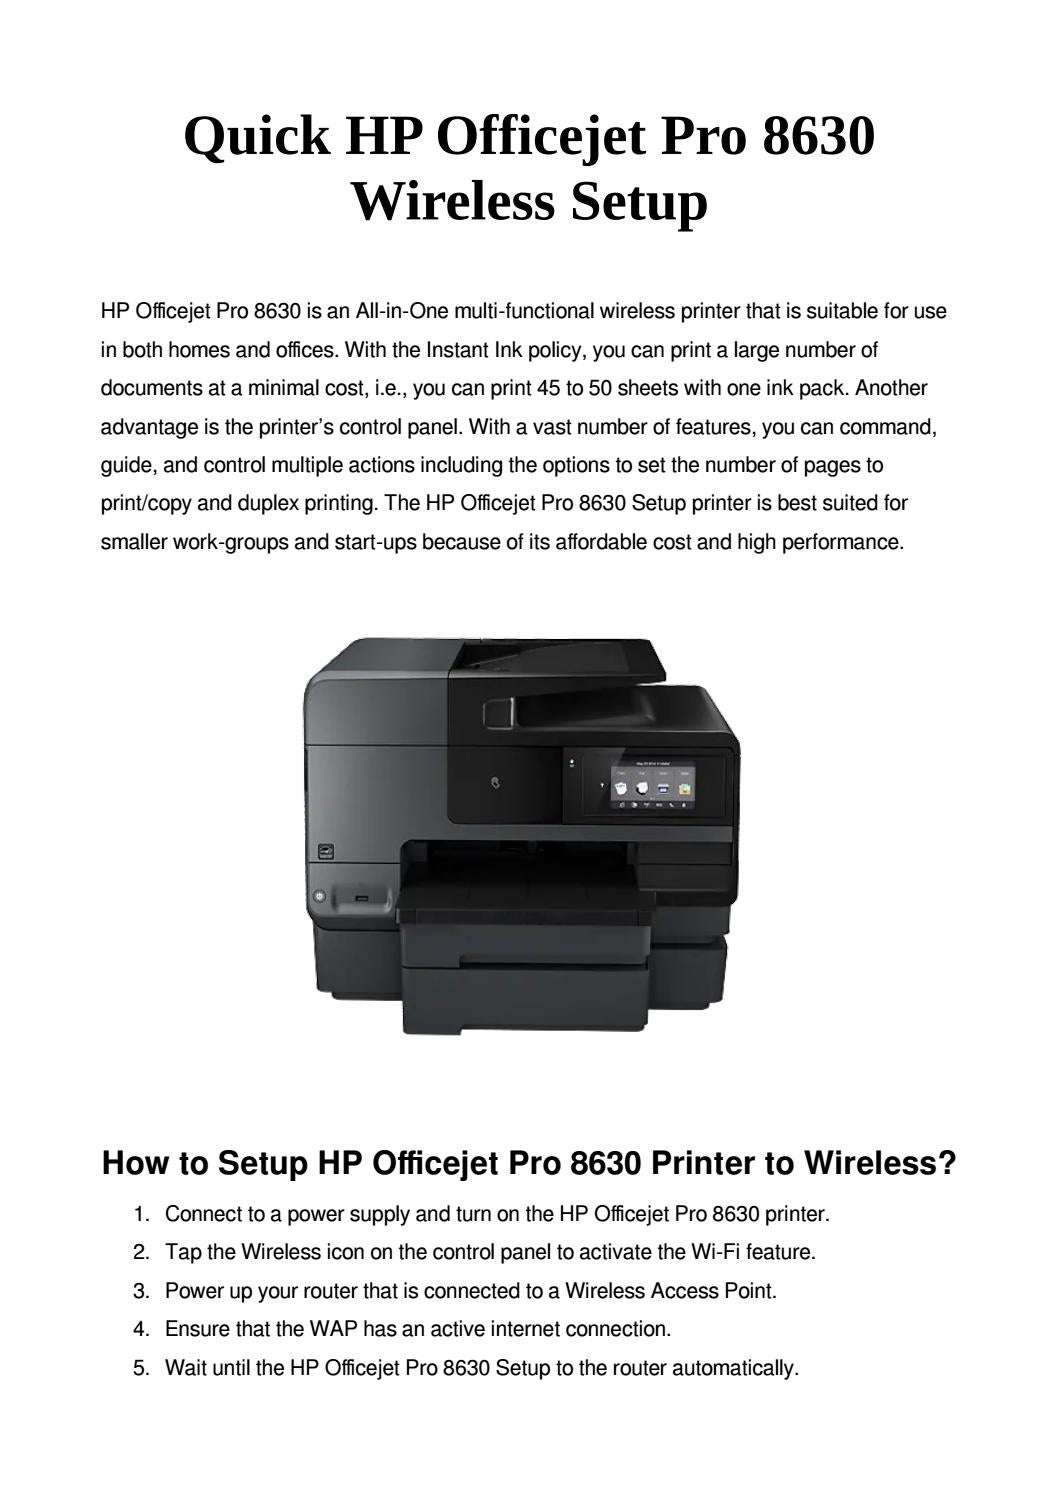 Hp Officejet Pro 8630 Setup Quick Wireless Connection By Sandra Carol Issuu